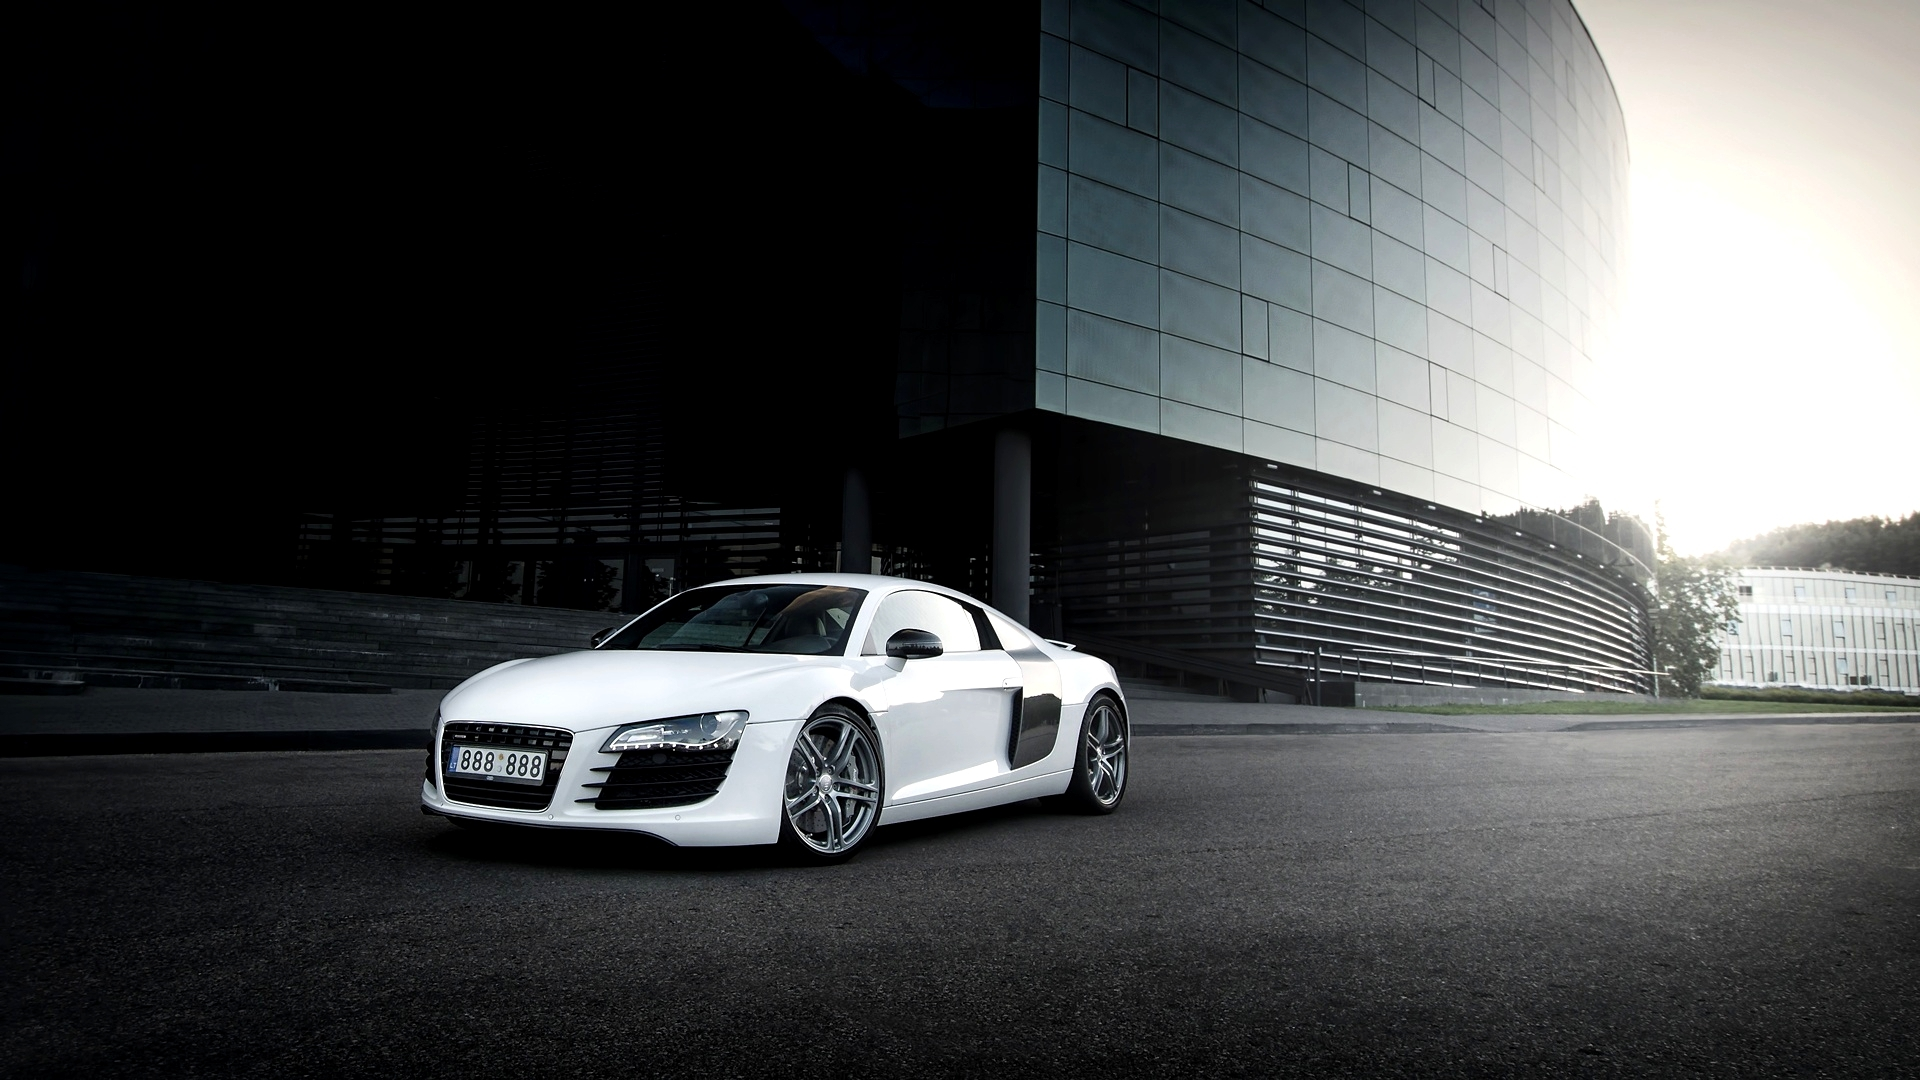 25 Awesome Hd Audi R8 Wallpapers Hdwallsource Com